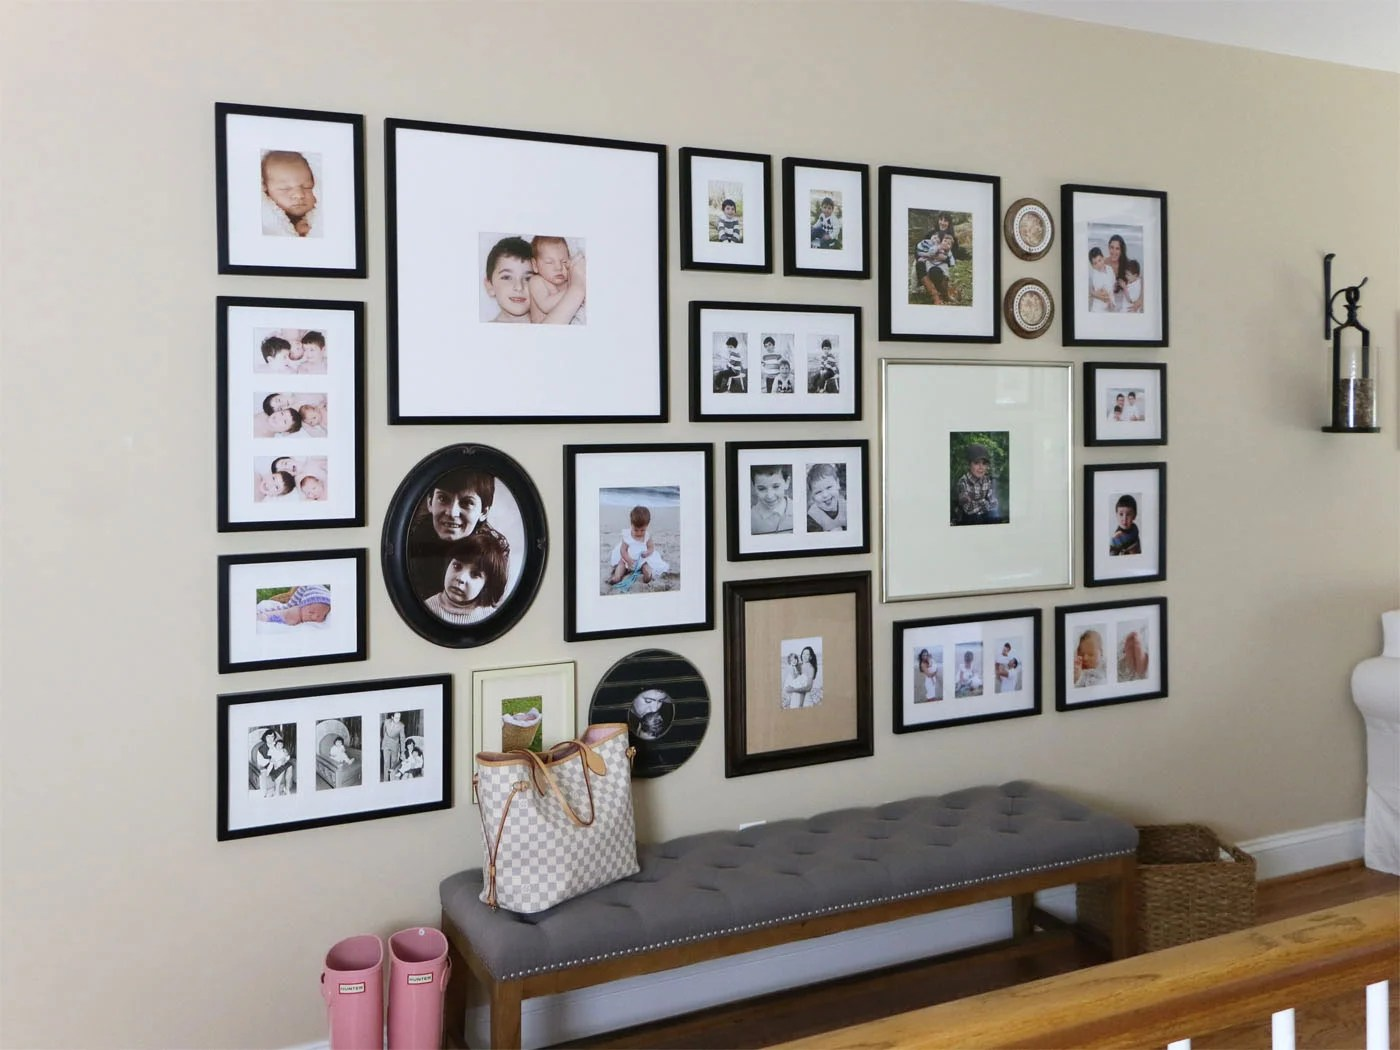 How To Create a Gallery Wall – Tips and Tricks